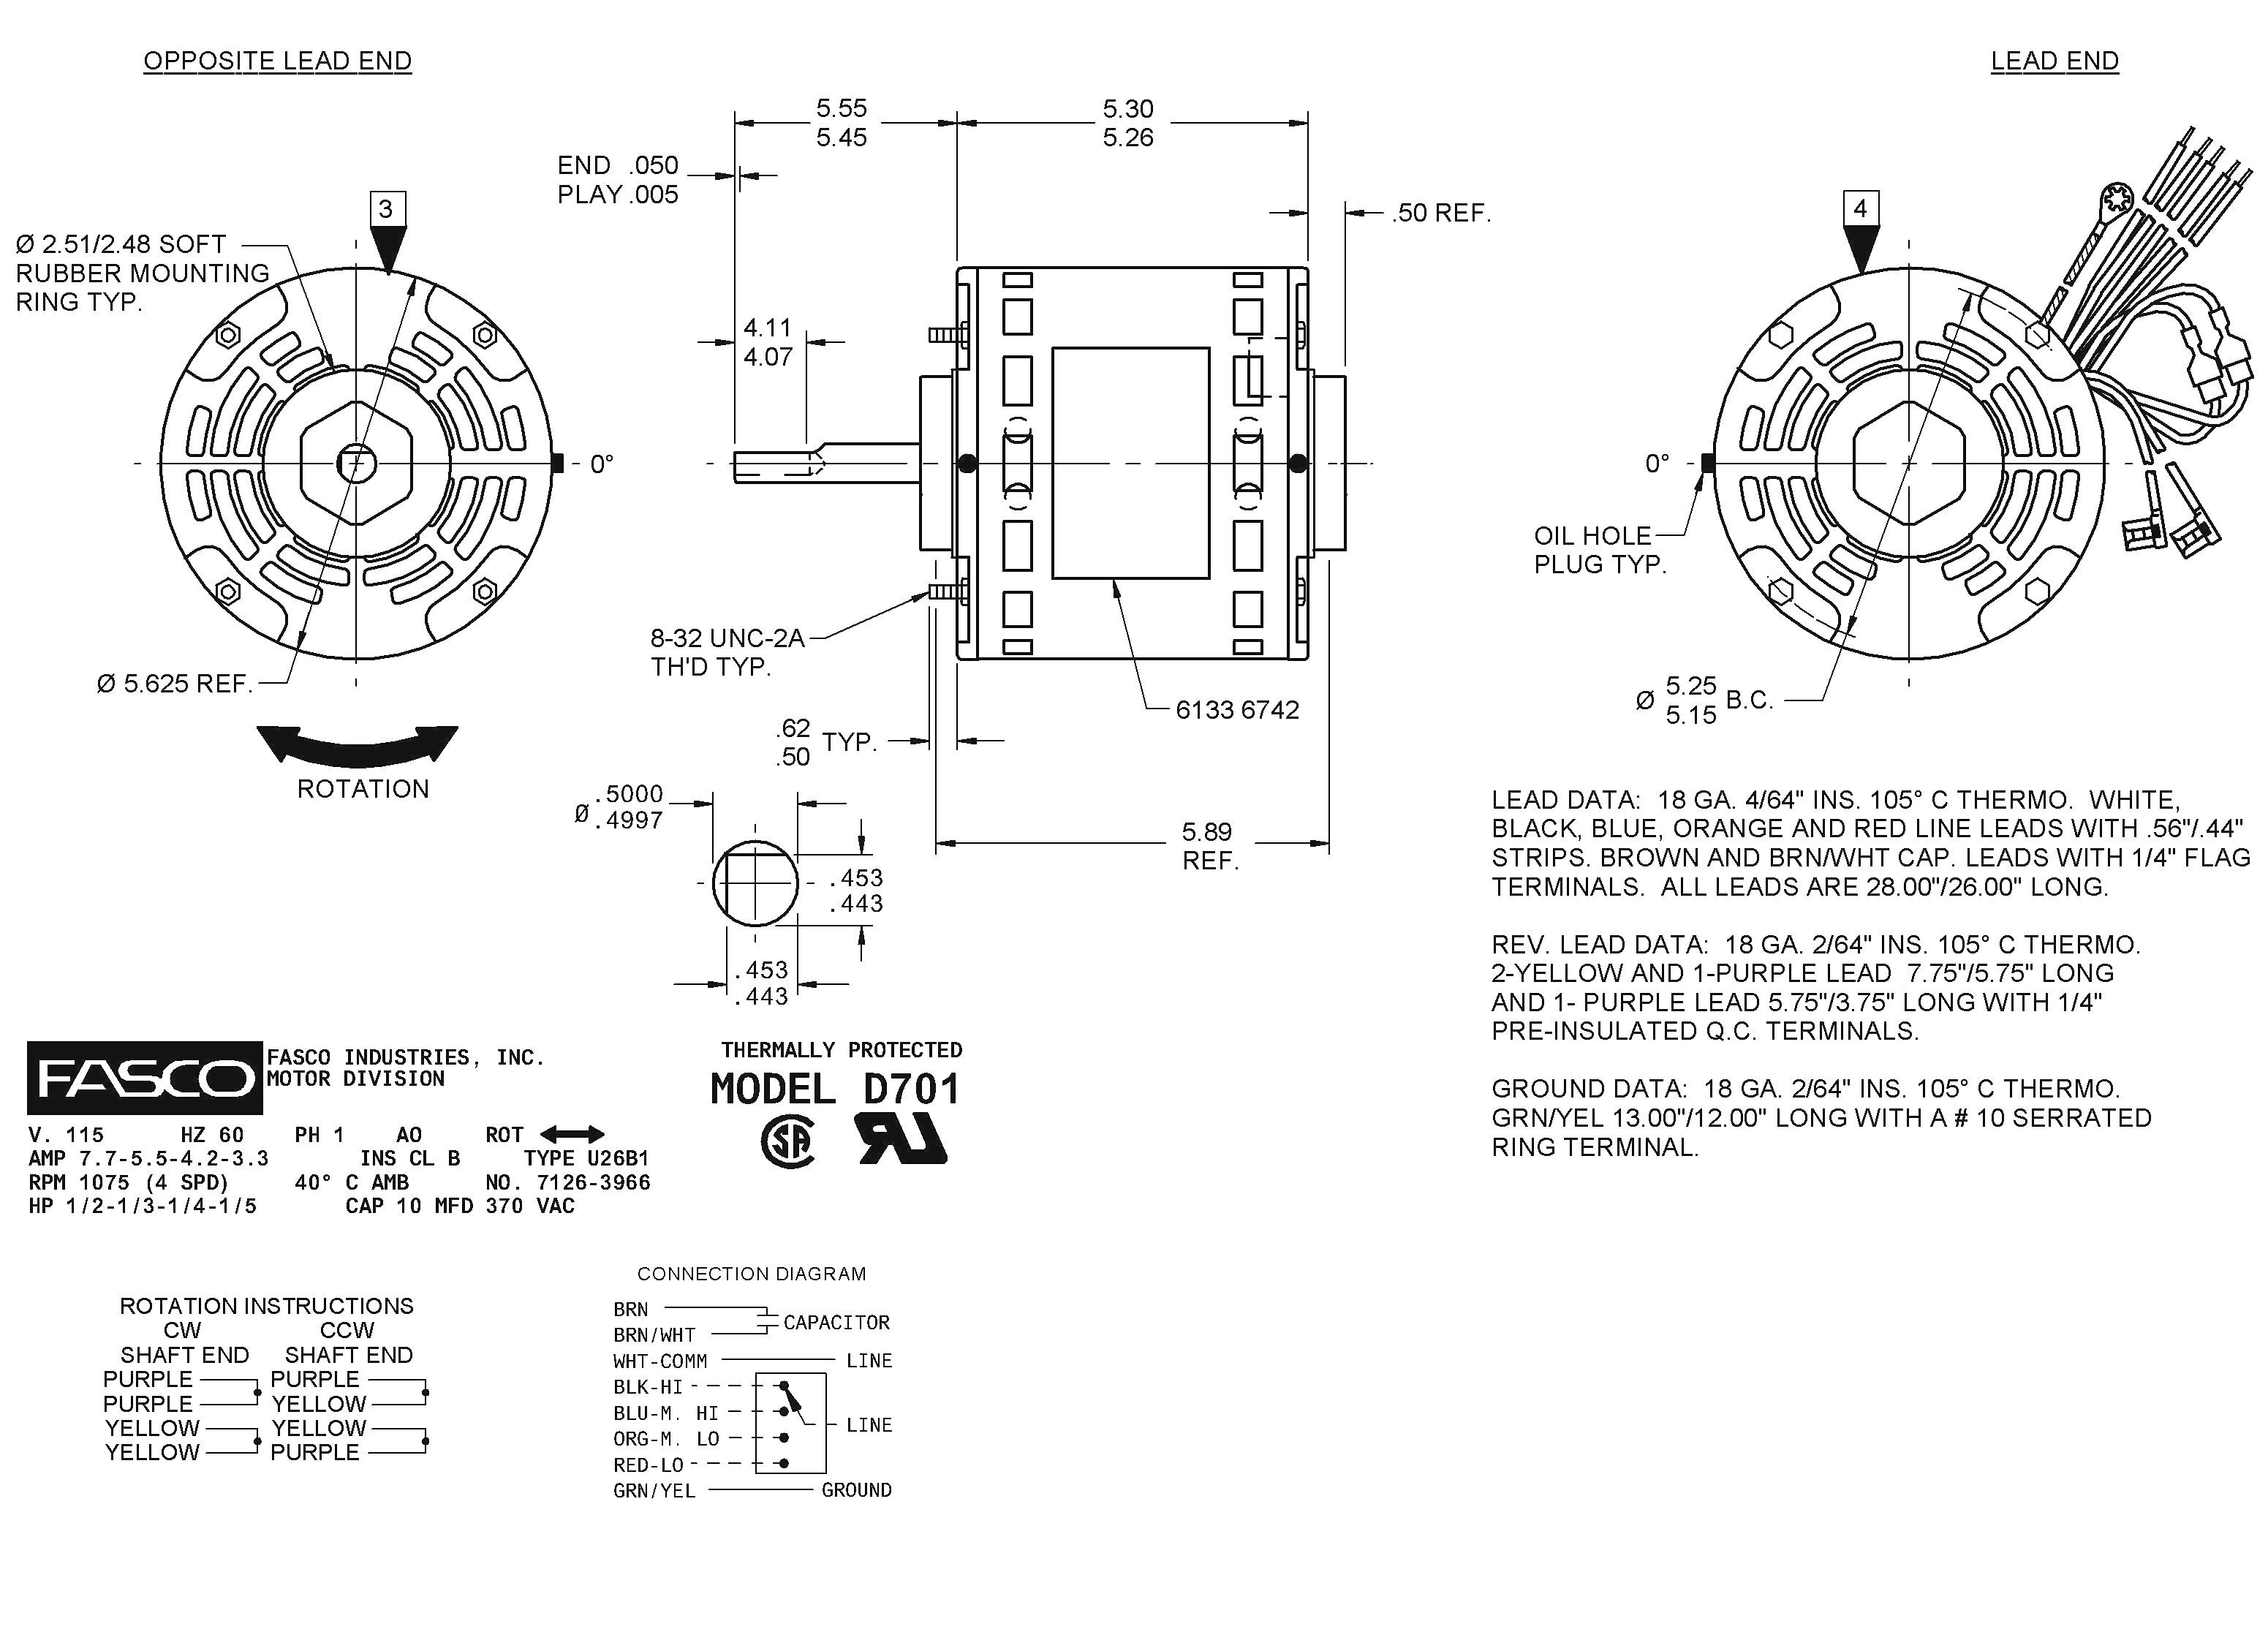 Doerr electric motor lr22132 wiring diagram best of wiring diagram emerson motor wiring diagram inspiration electric circuit single cheapraybanclubmaster Gallery